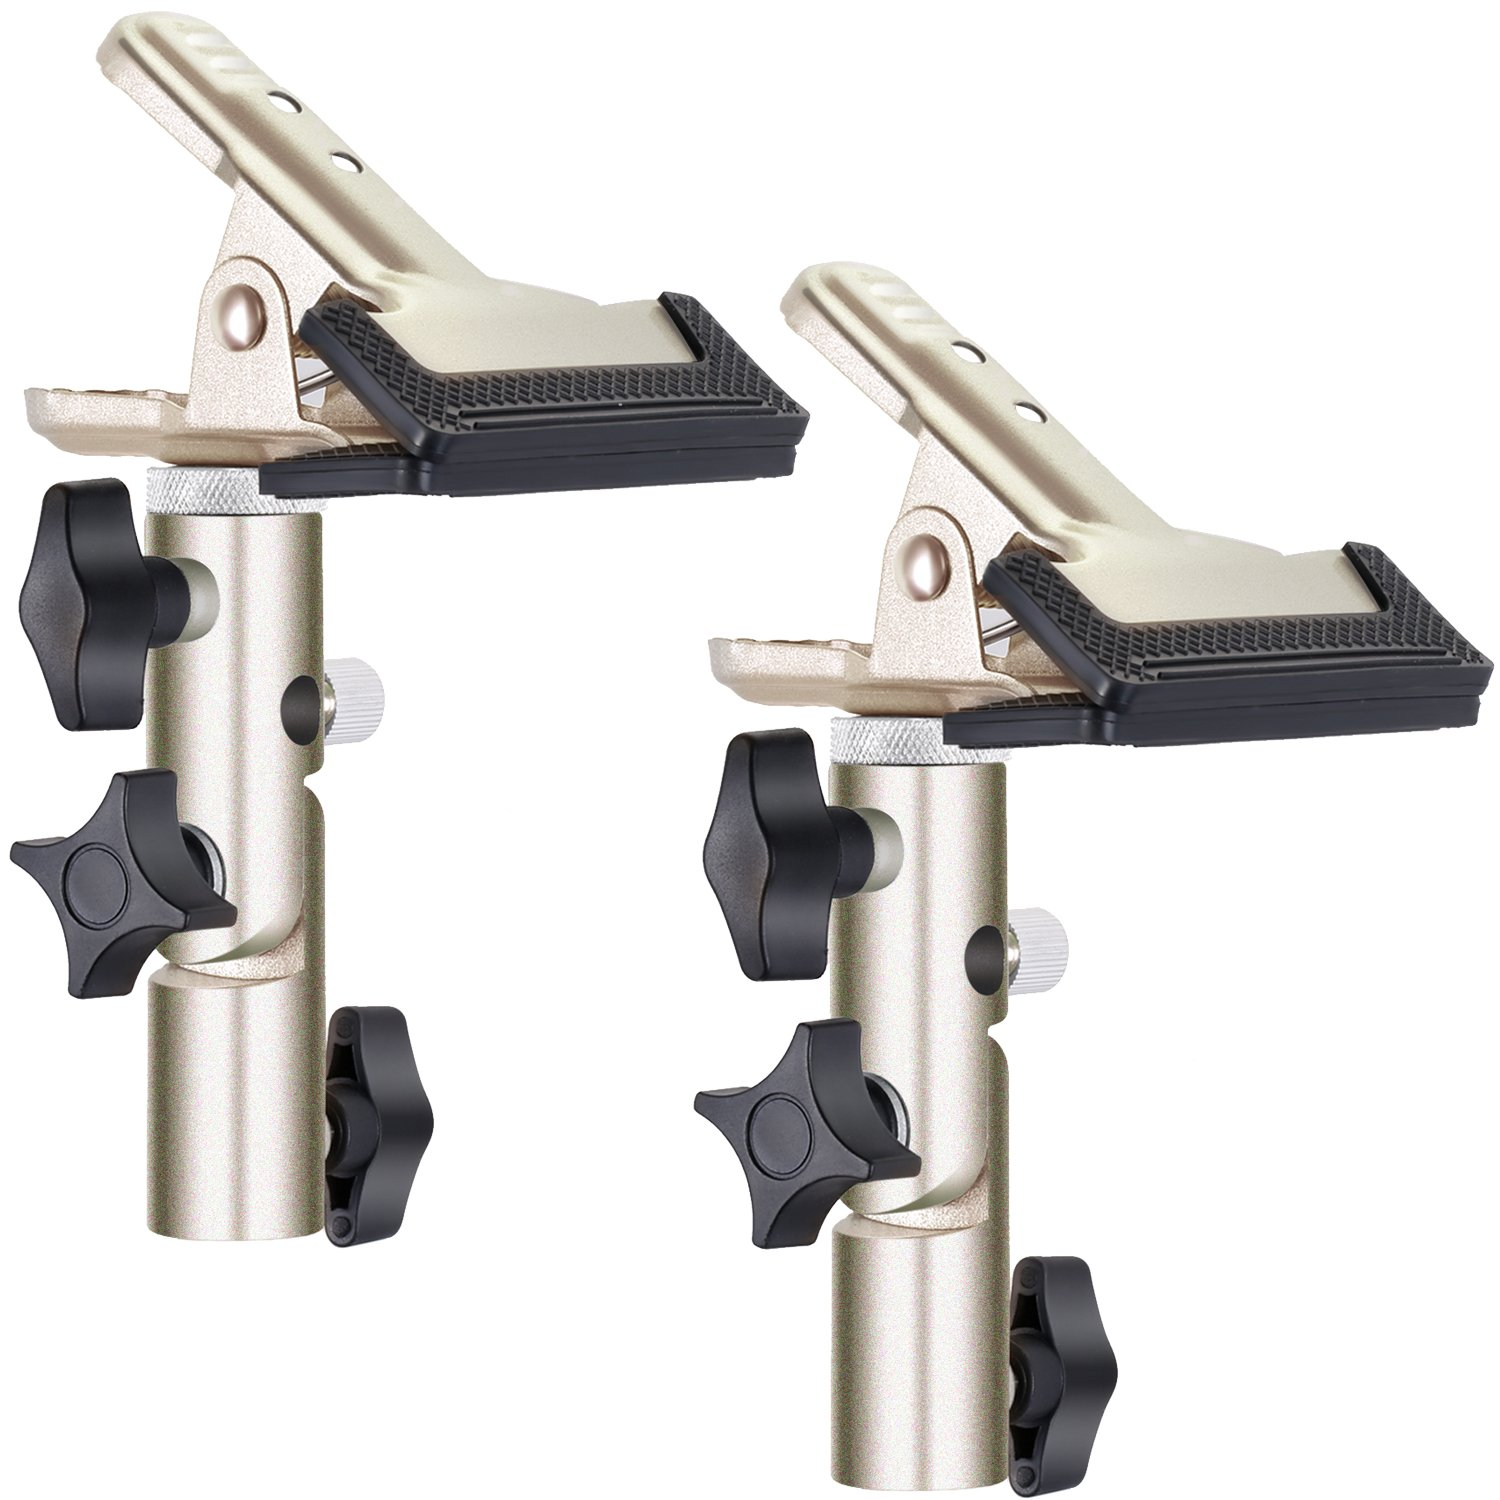 Neewer® 2 PCS Photo Studio Heavy Duty Metal Clamp Holder with 5/8' Light Stand Attachment for Reflector 90087337@@1058